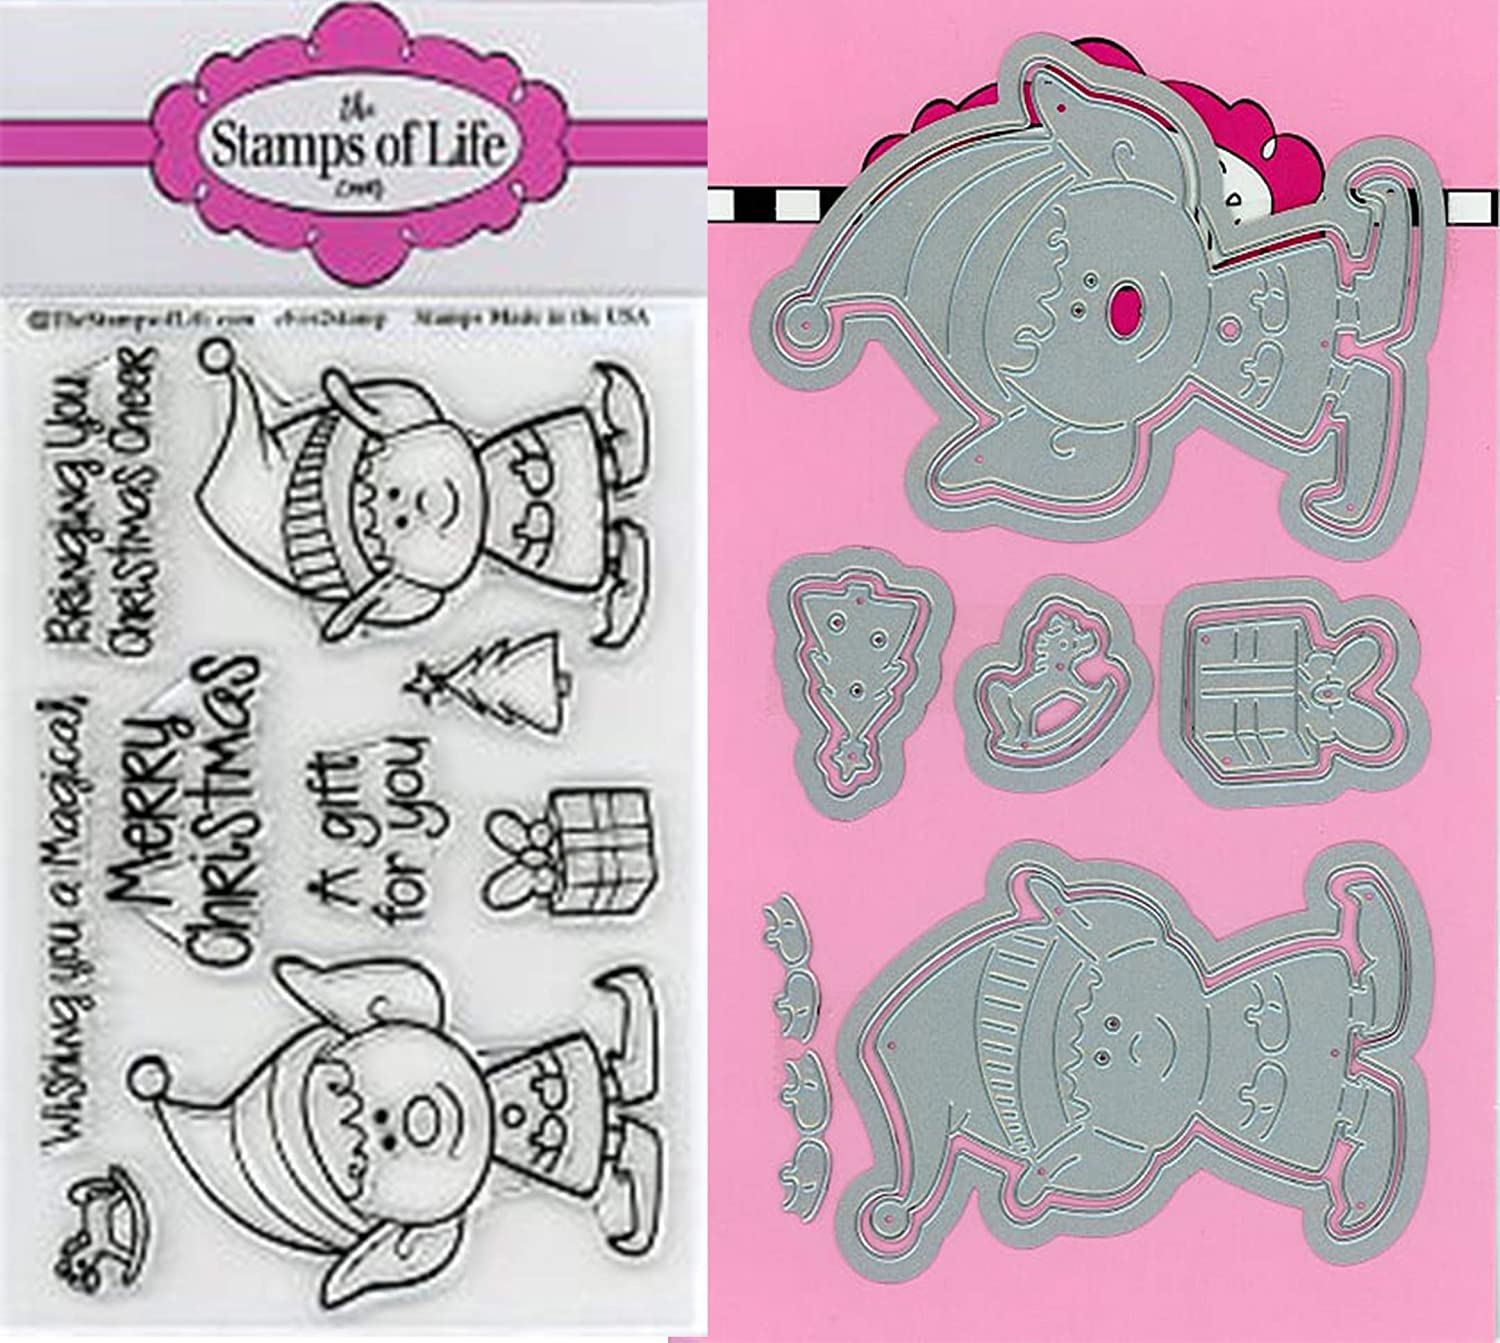 Elves Christmas Stamps and Dies for Scrapbooking and Card-Making by The Stamps of Life - Elf-2-Stamp and Die